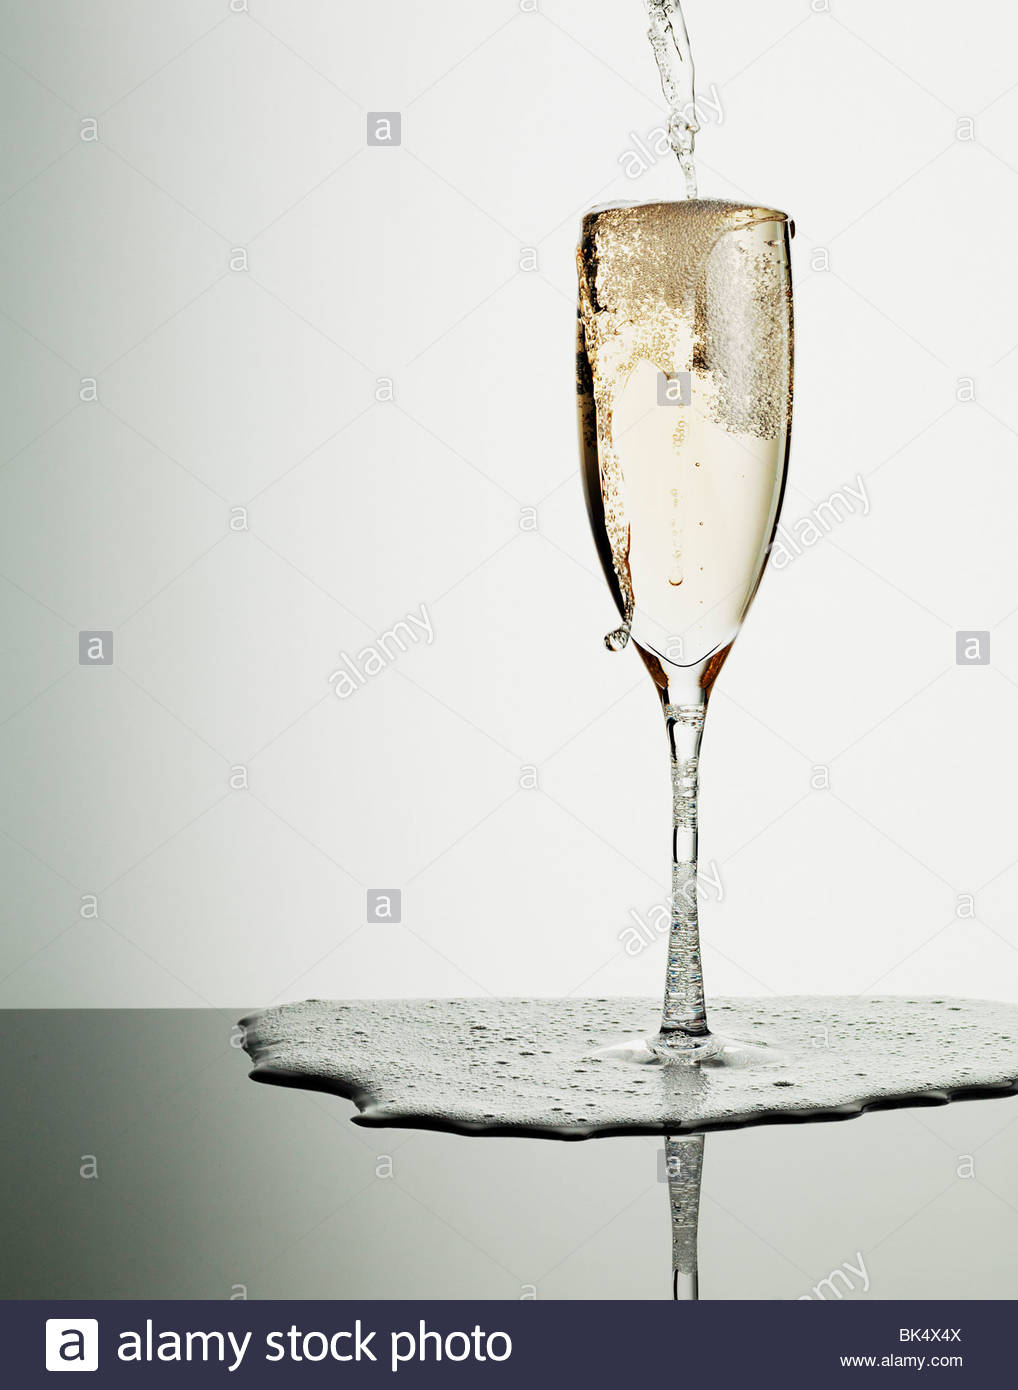 Champagne pouring into glass and overflowing - Stock Image